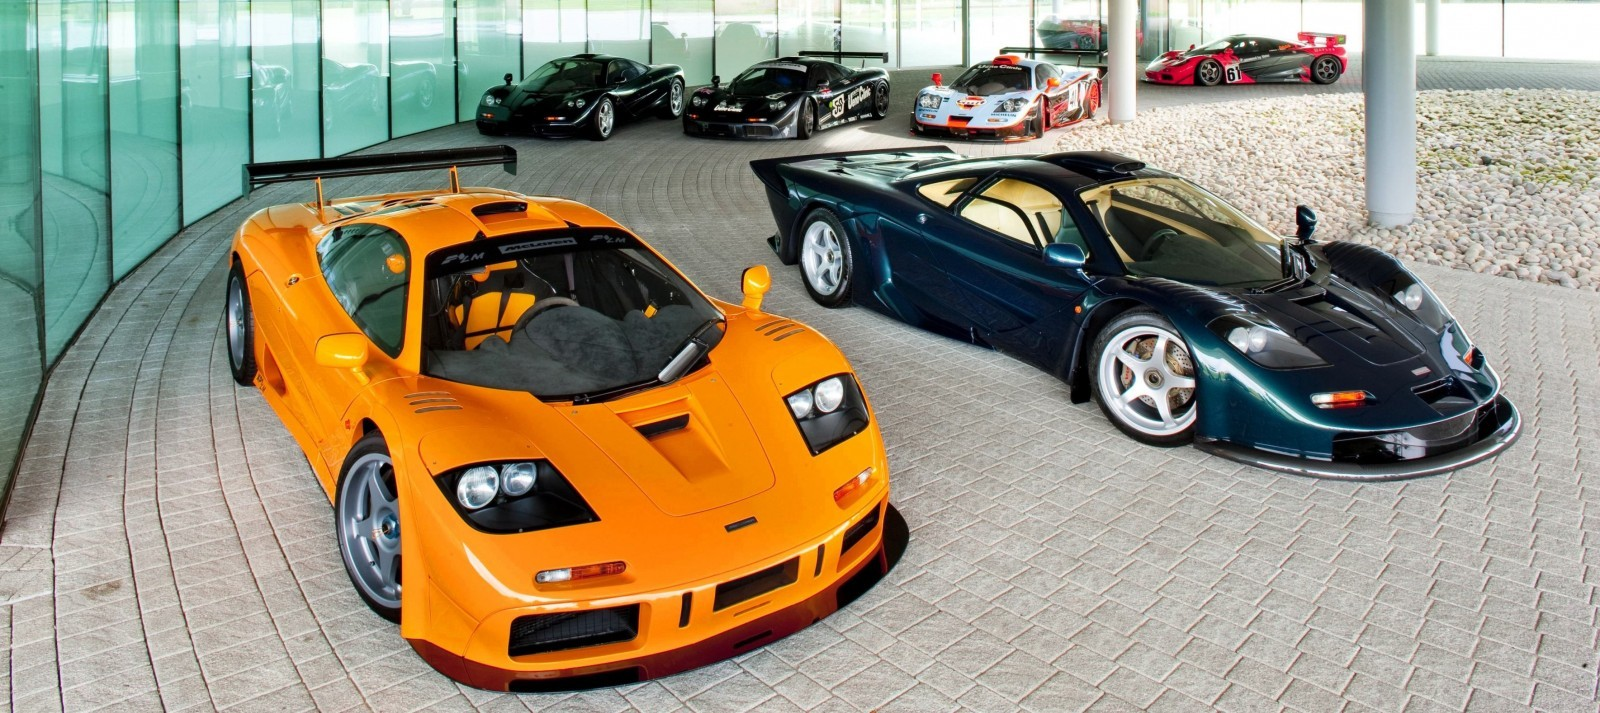 CarRevsDaily - Supercar Legends - McLaren F1 Wallpaper 15